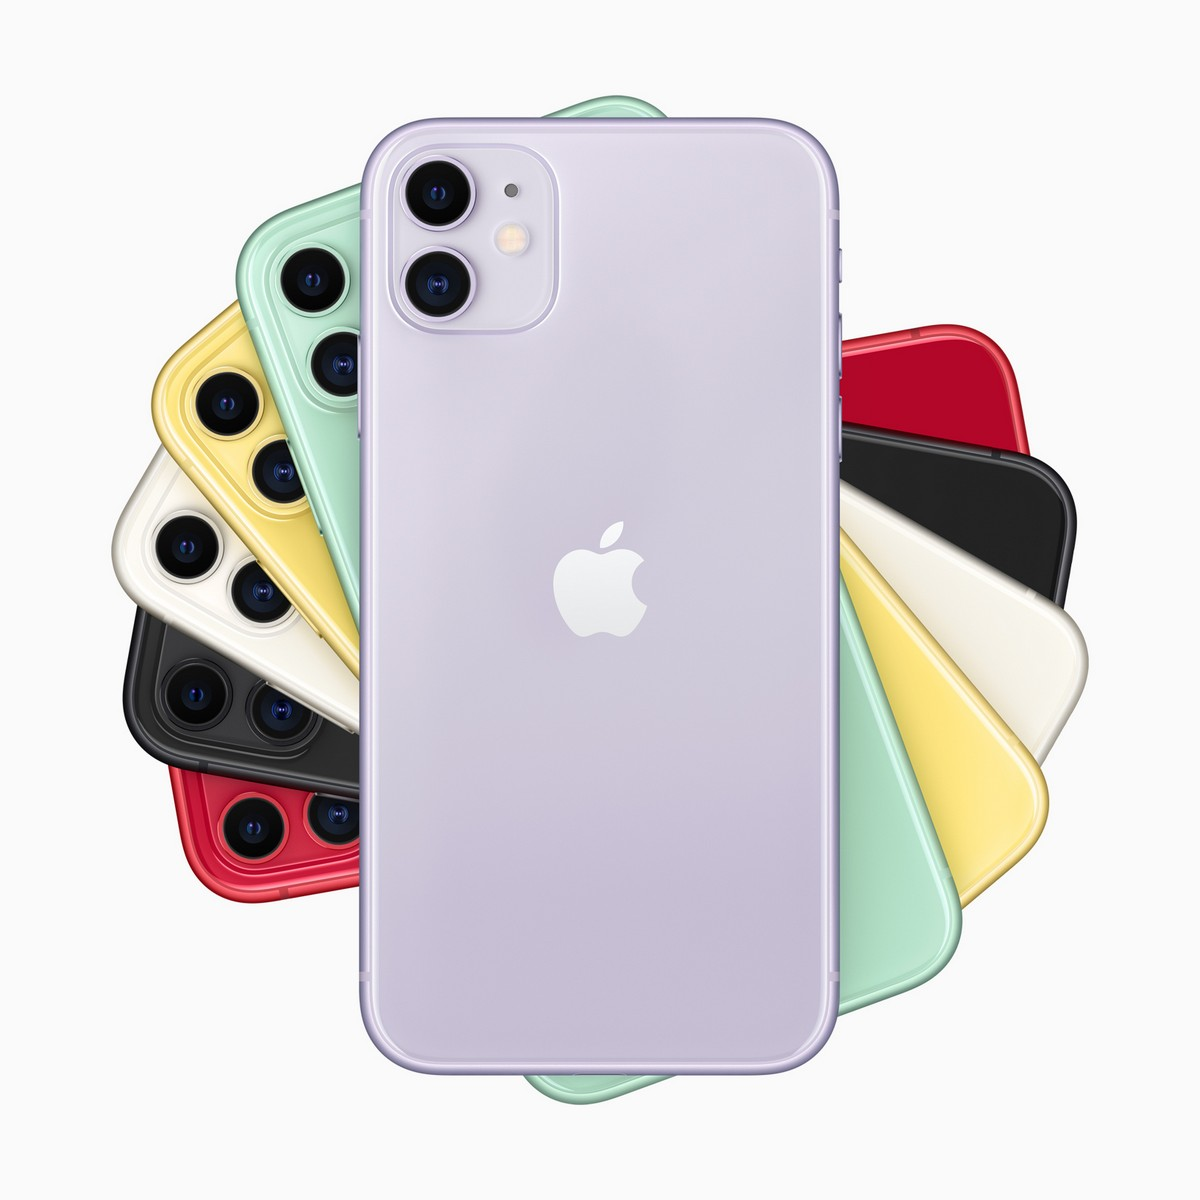 Apple's iPhone 11 Has Surpassed The iPhone XR As The World's Most Popular Smartphone